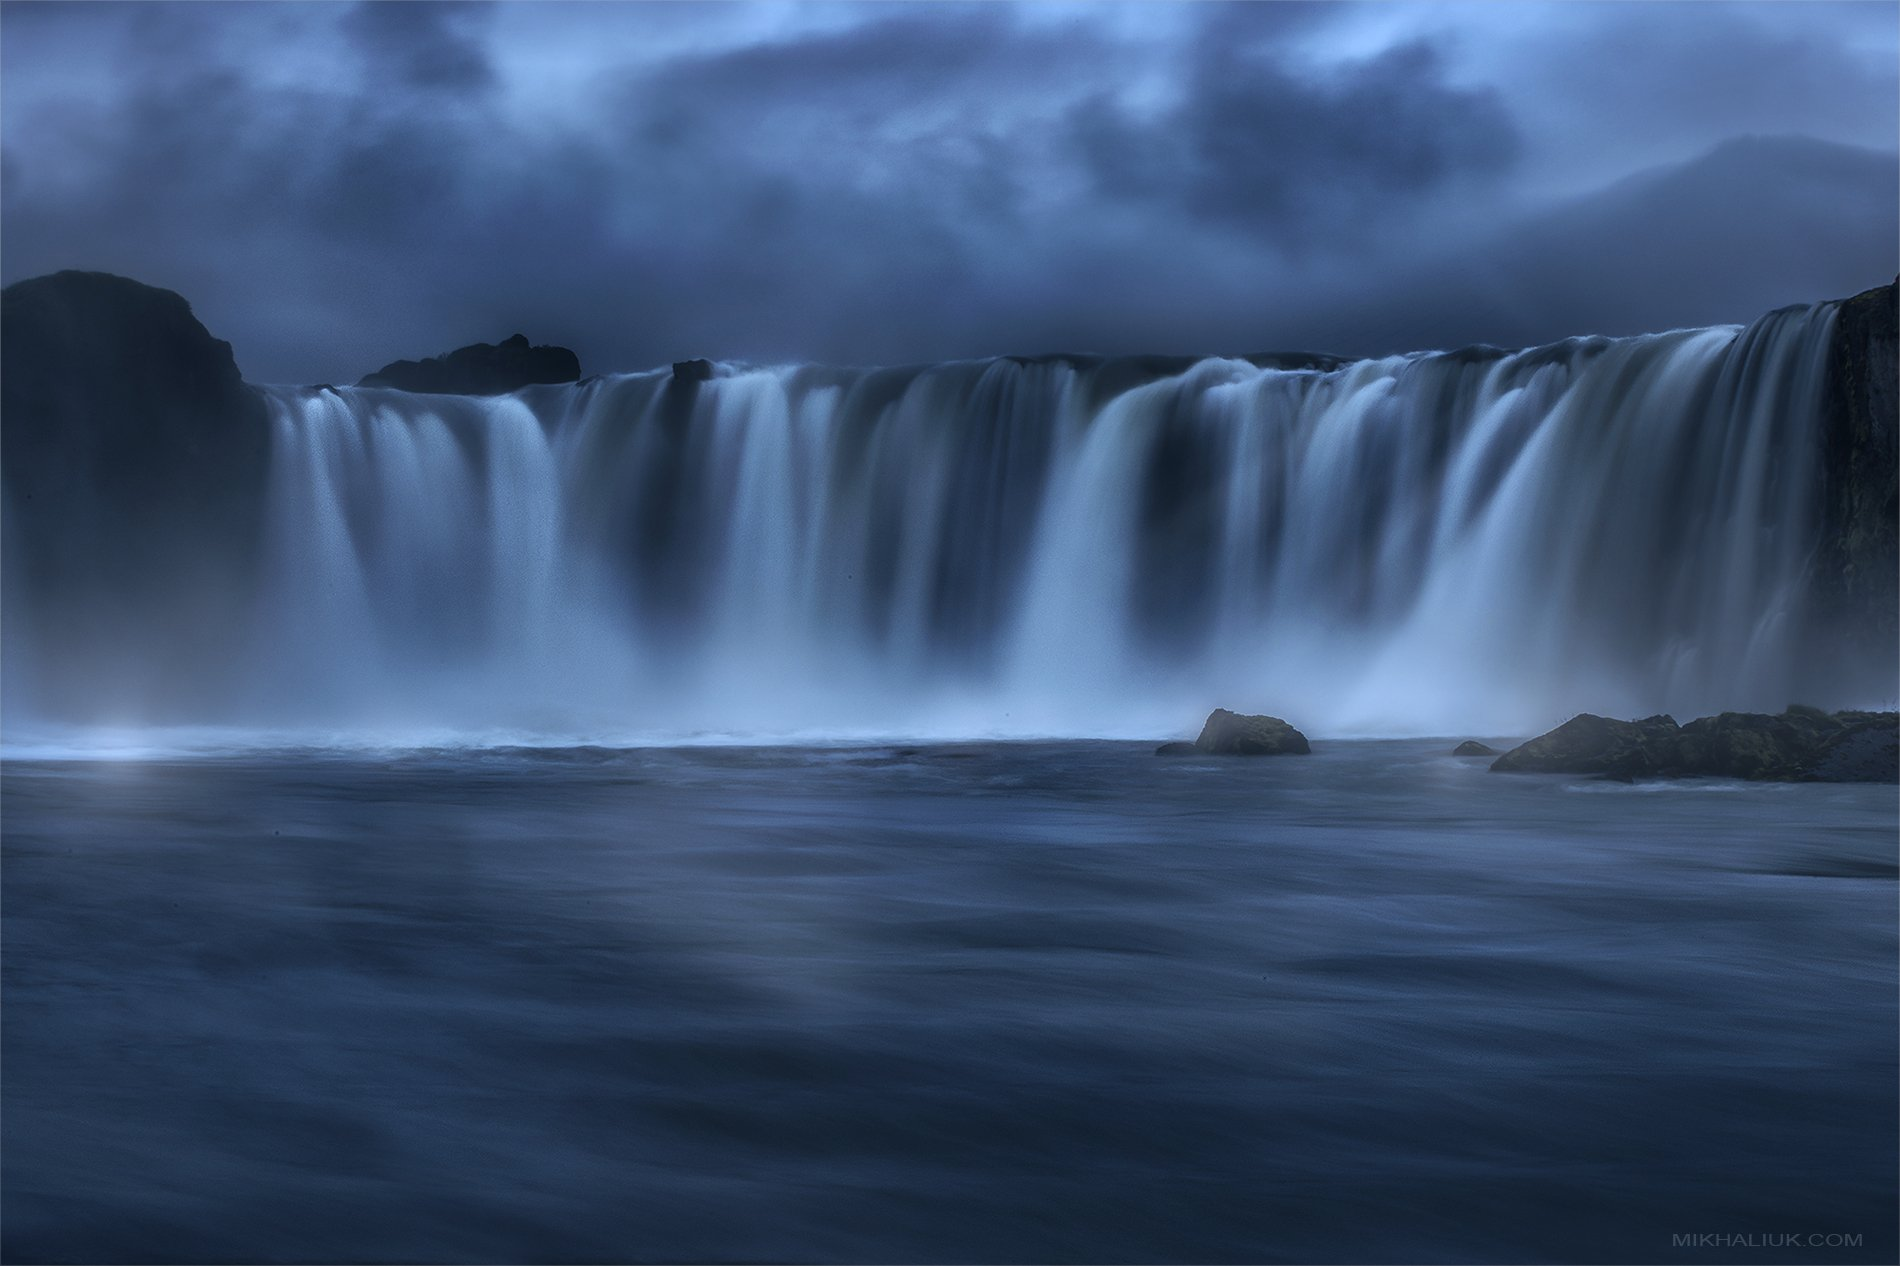 waterfall ,,iceland, godafoss, фототур,, Михалюк Сергей *